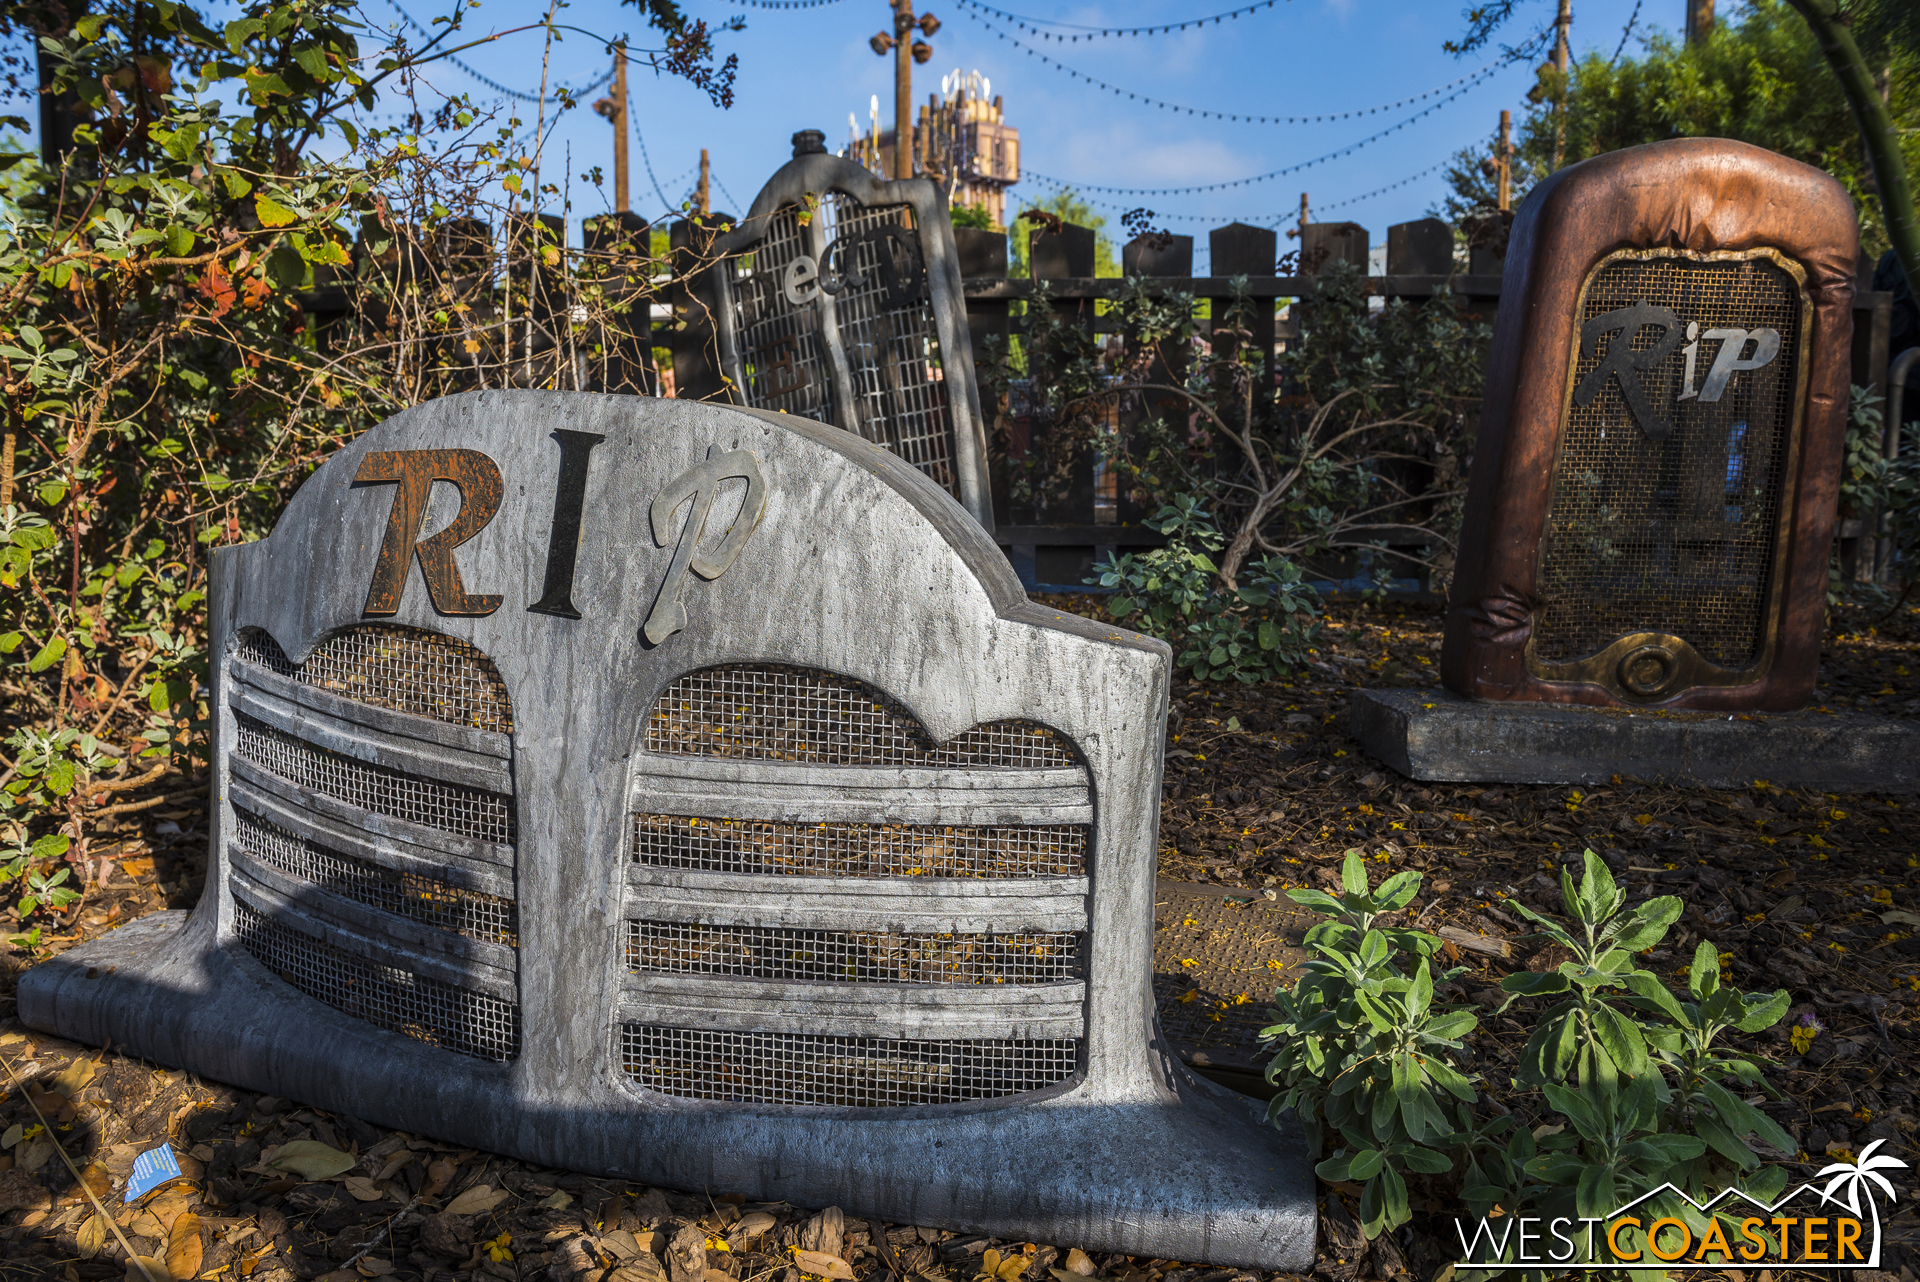 Mater's featured new holiday-themed songs, including some that were Halloween alternates of regular songs.